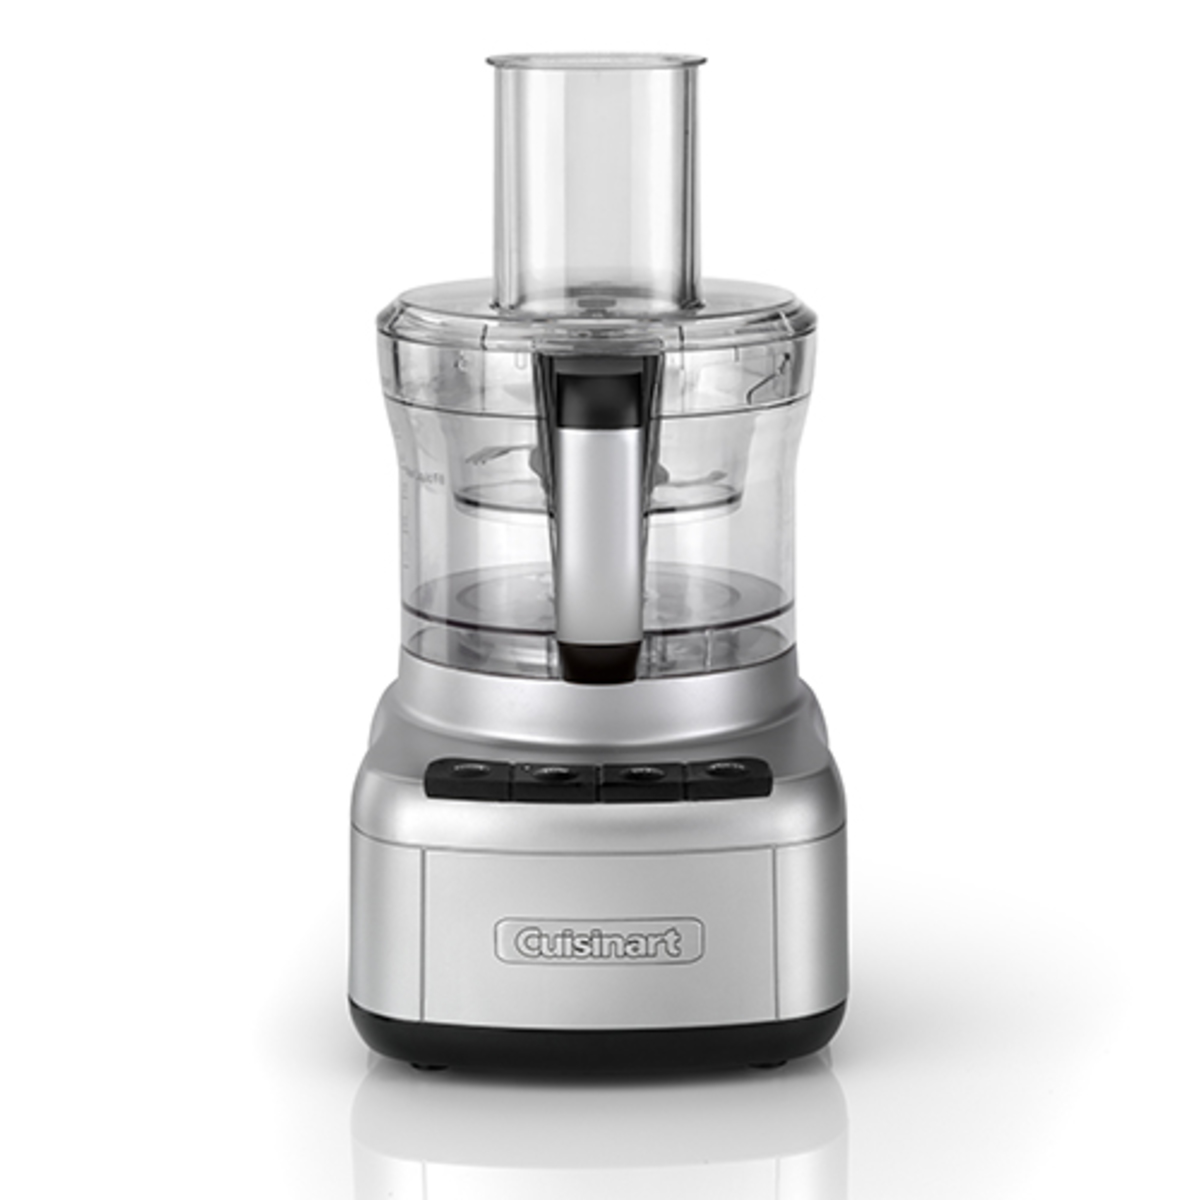 Image of Cuisinart FP8U Easy Prep Pro Food Processor